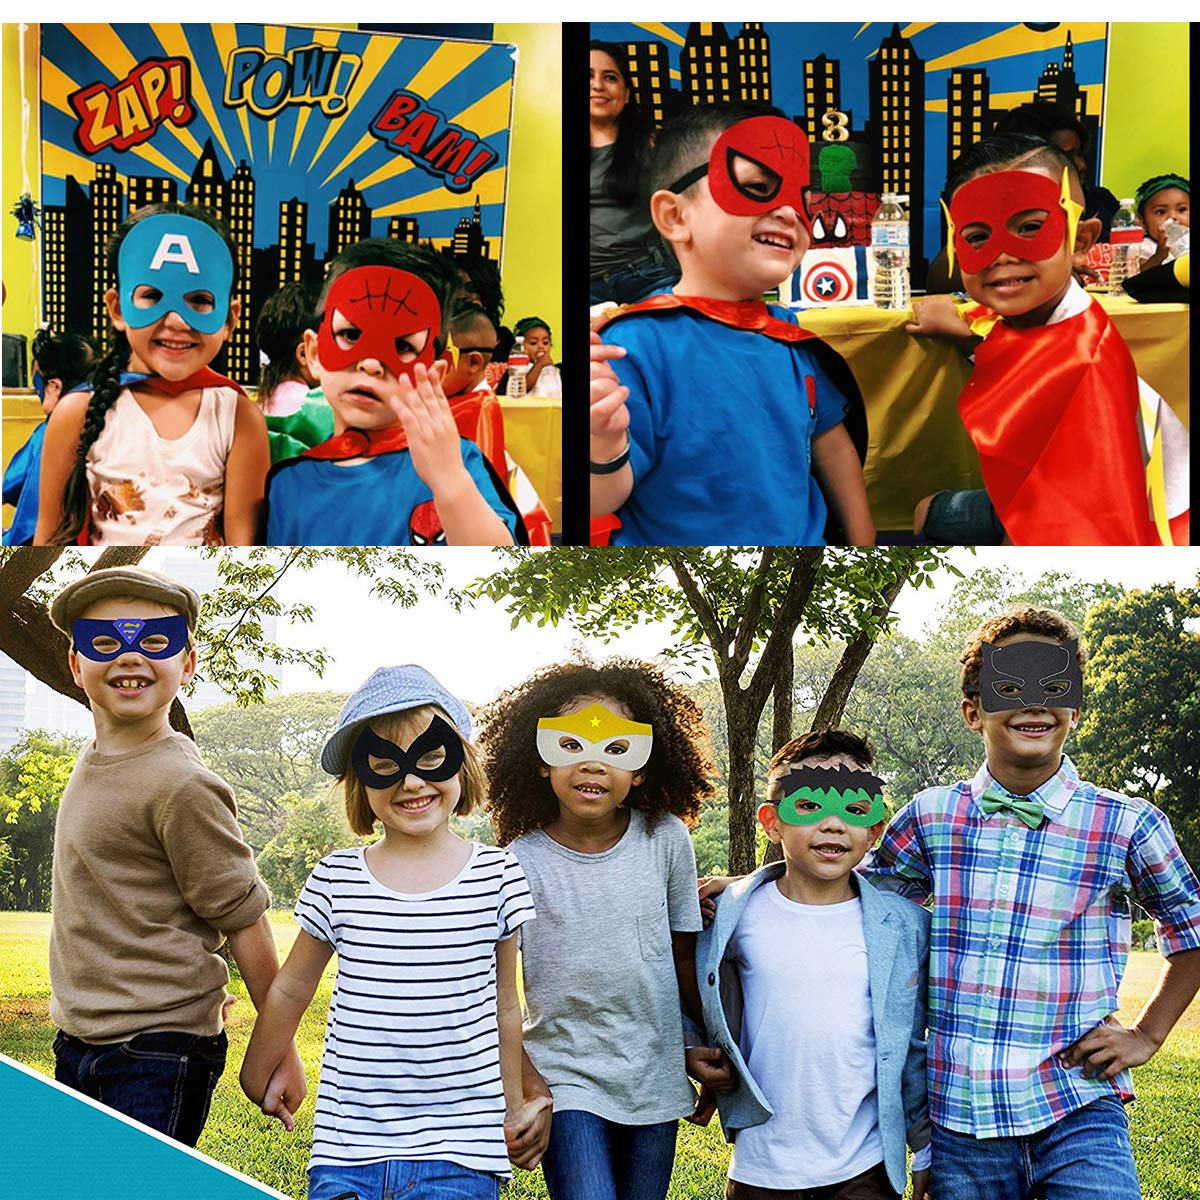 Kids Party Cosplay Masks Felt Party Masks 33 Pieces Multiple Sizes ADJUSTABLE Elastic Band for Birthday Halloween Party Supplies to Decoration